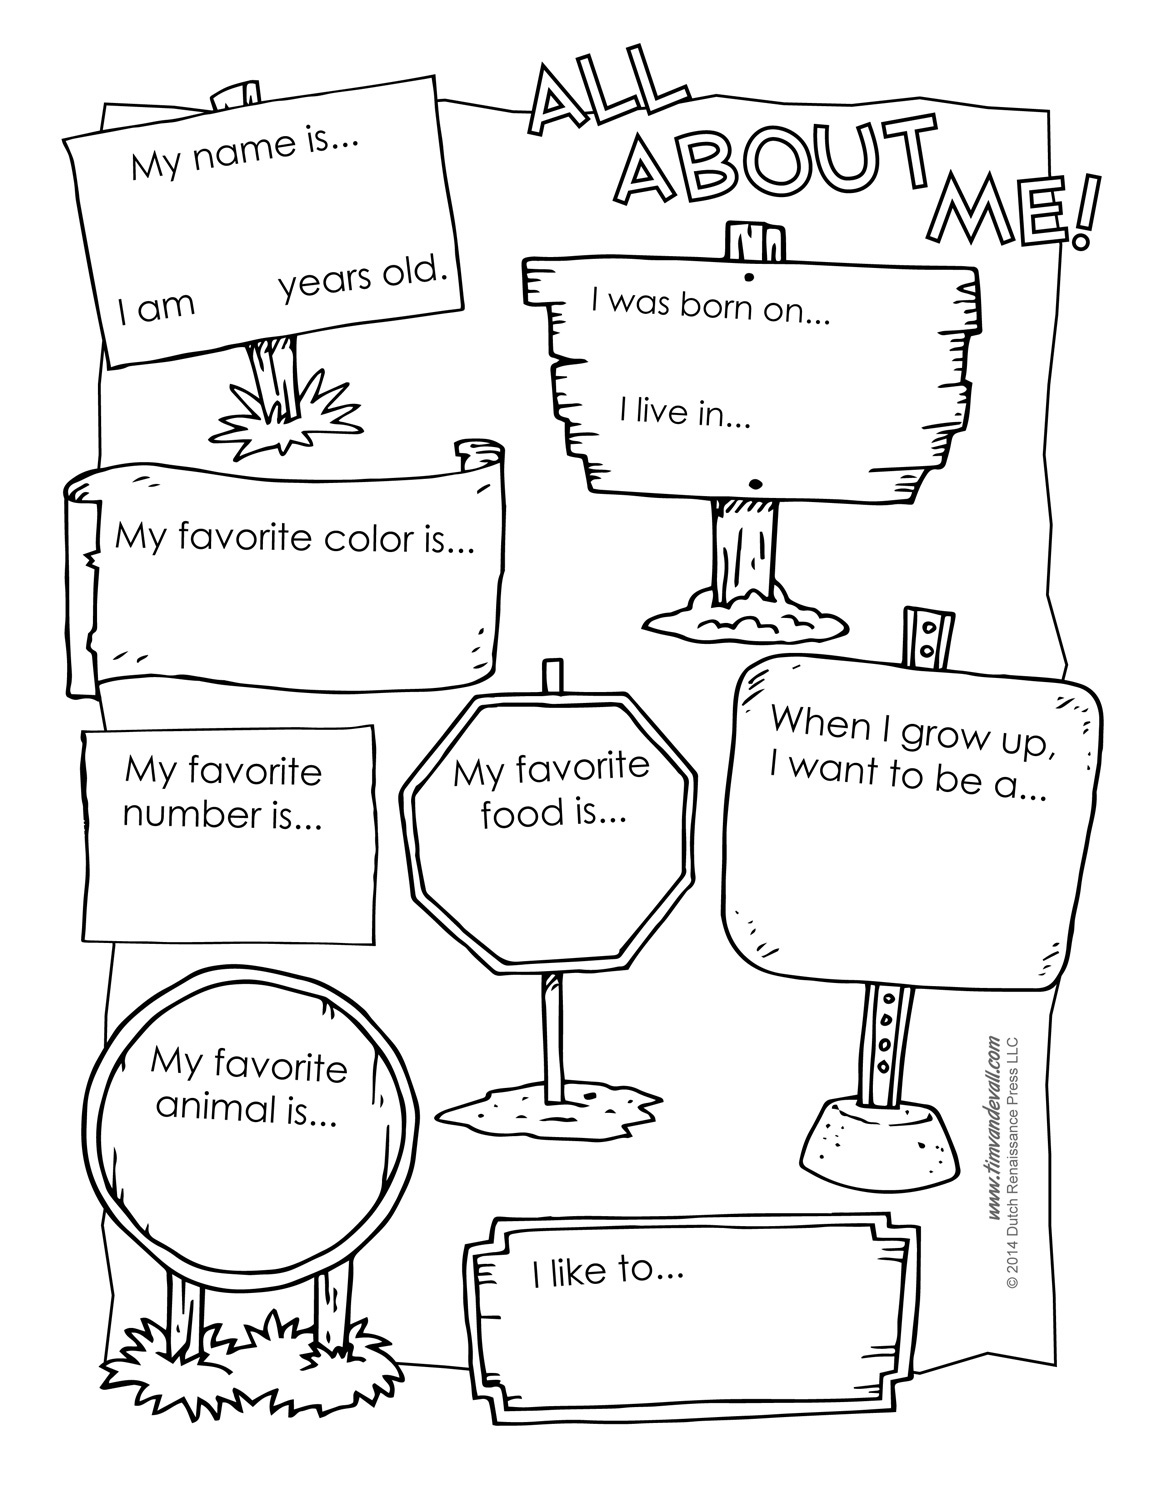 Printable All About Me Poster & All About Me Template Pdf - Free Printable All About Me Poster